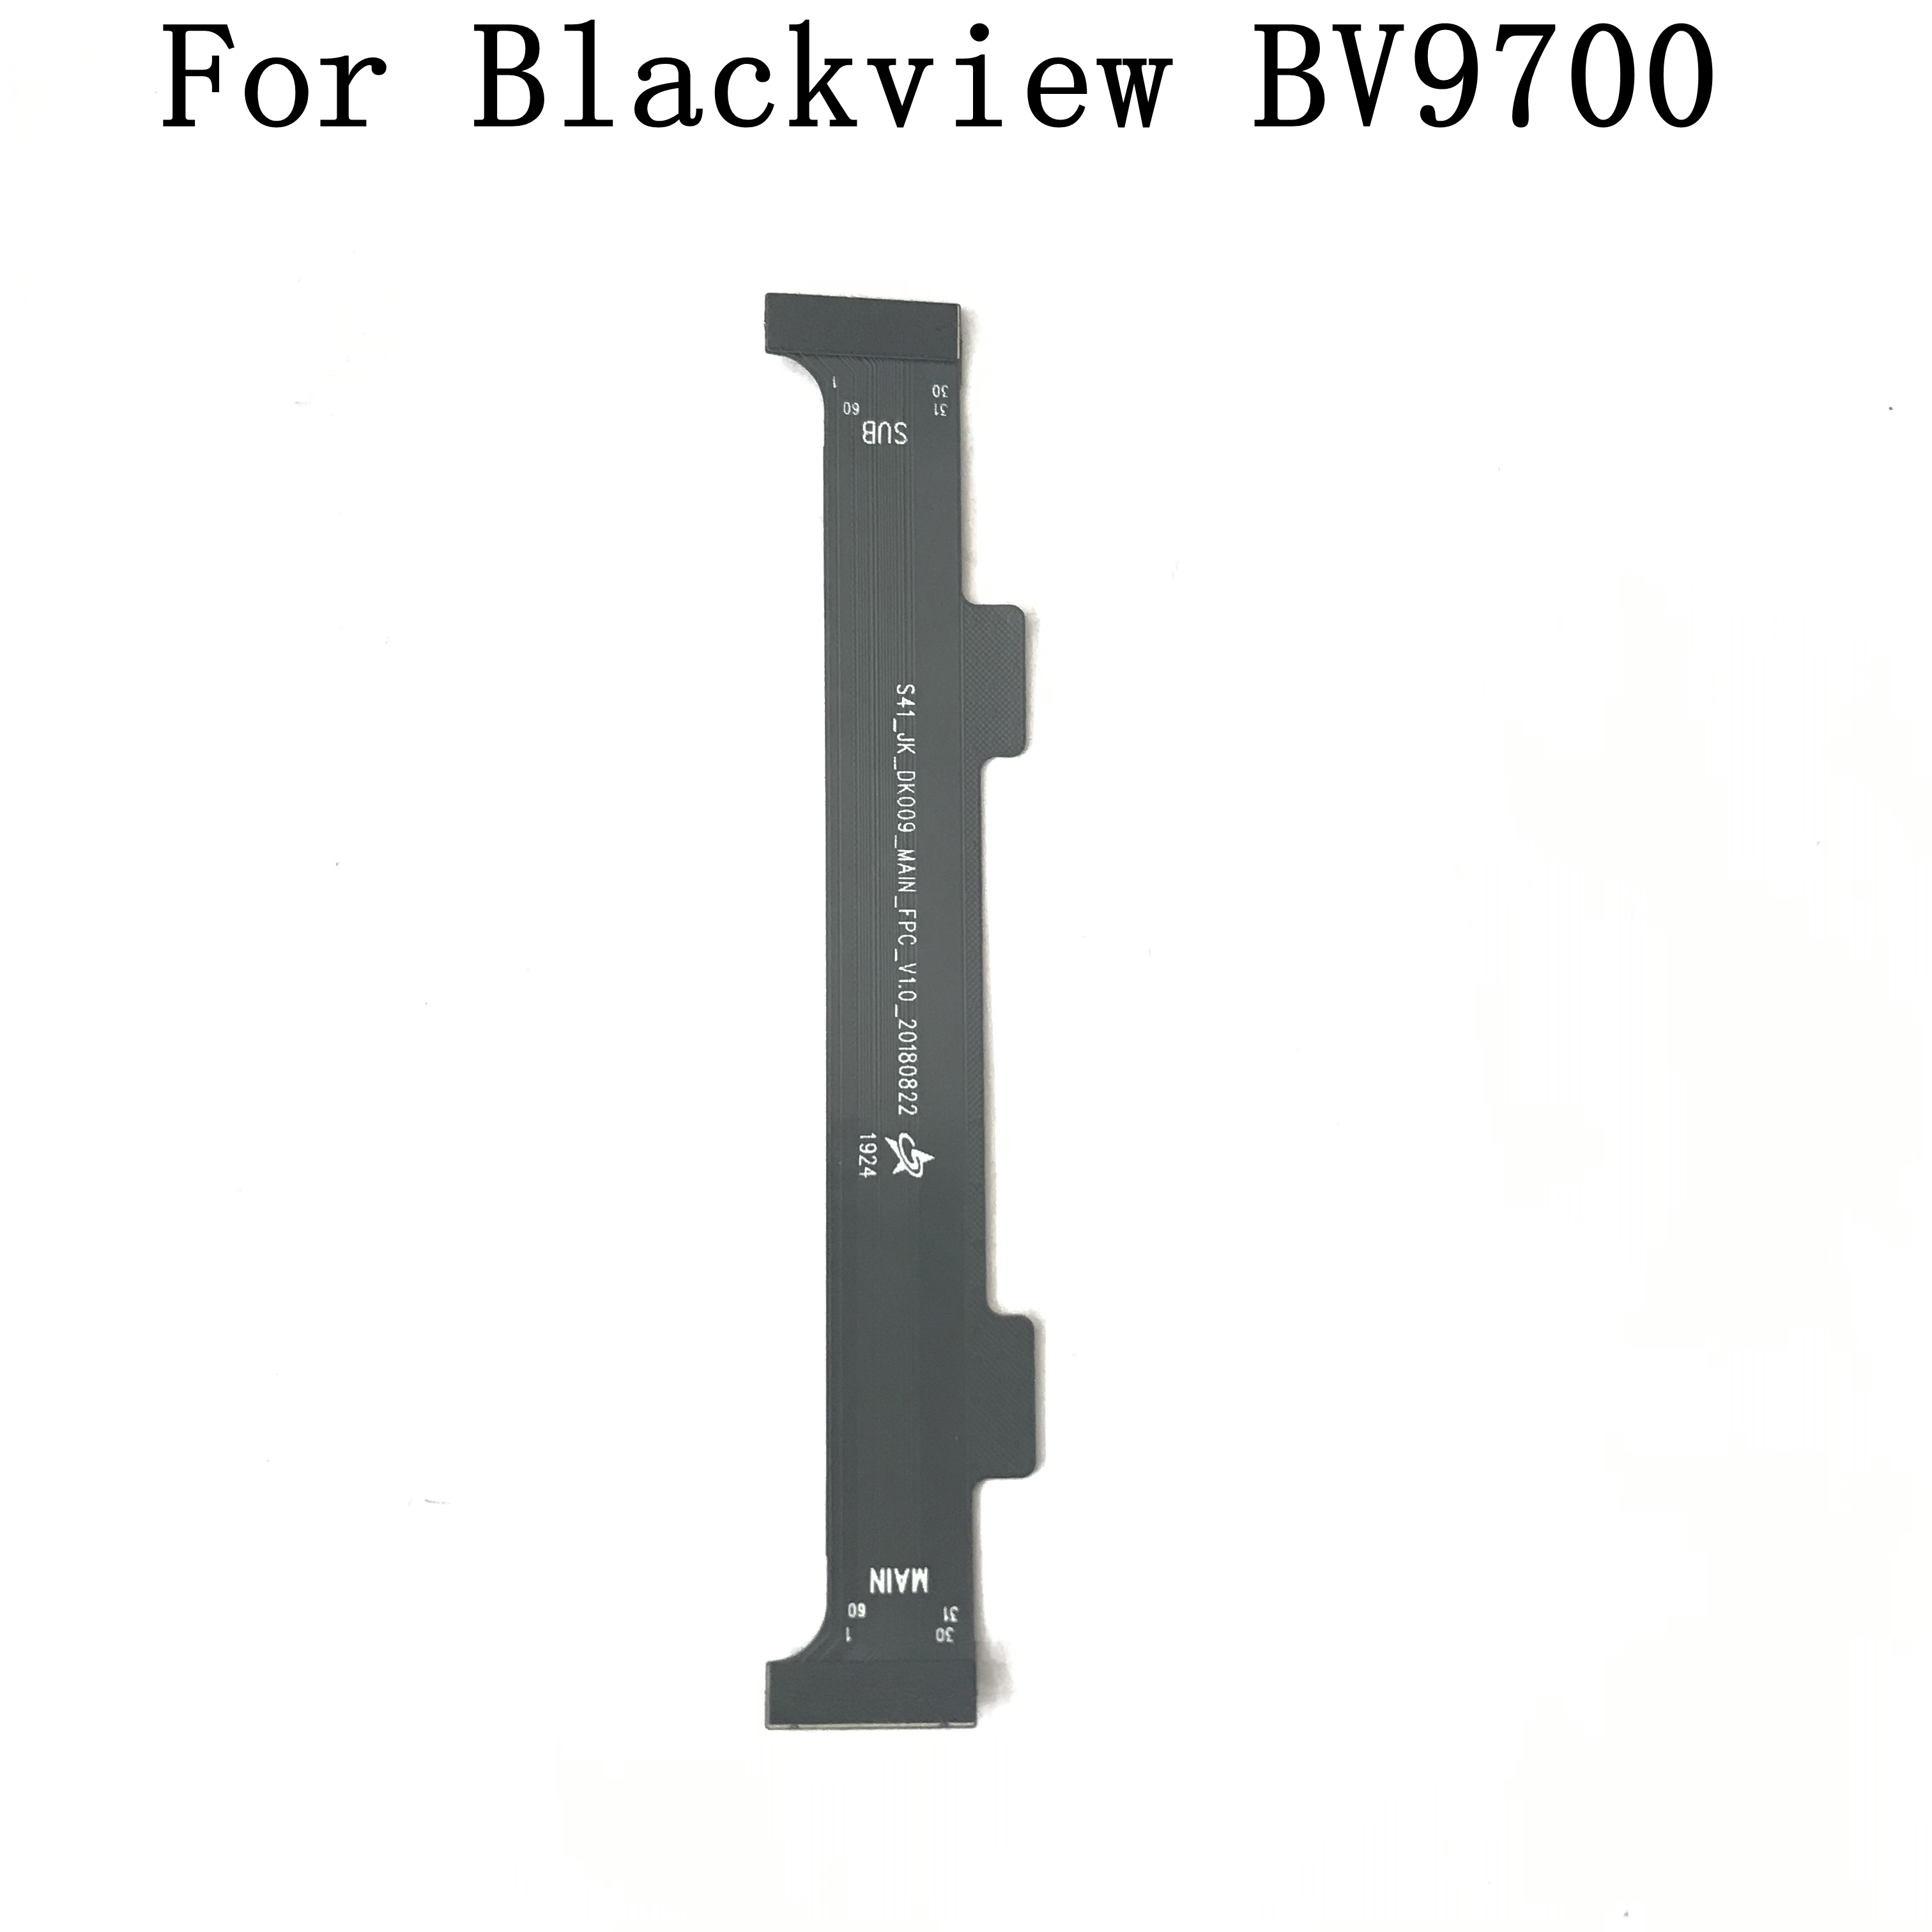 Blackview BV9700 New USB Charge Board to Motherboard FPC For Blackview BV9700 Pro MTK6771T 5.84inch 2280*1080 Smartphone